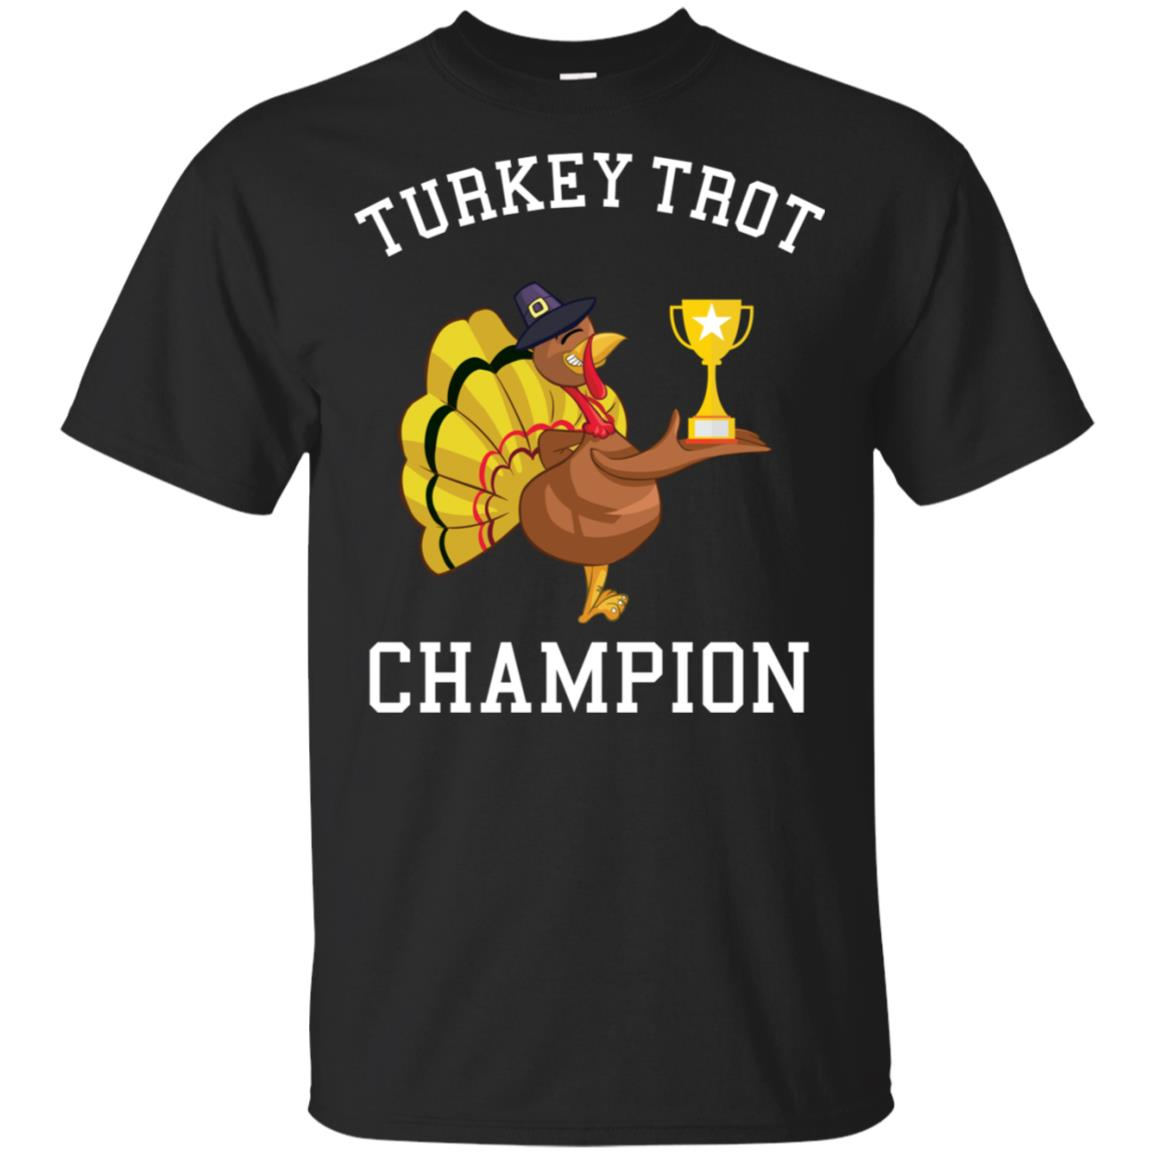 Turkey Trot Thanksgiving Champion Kids Adult Day Feast Unisex Short Sleeve